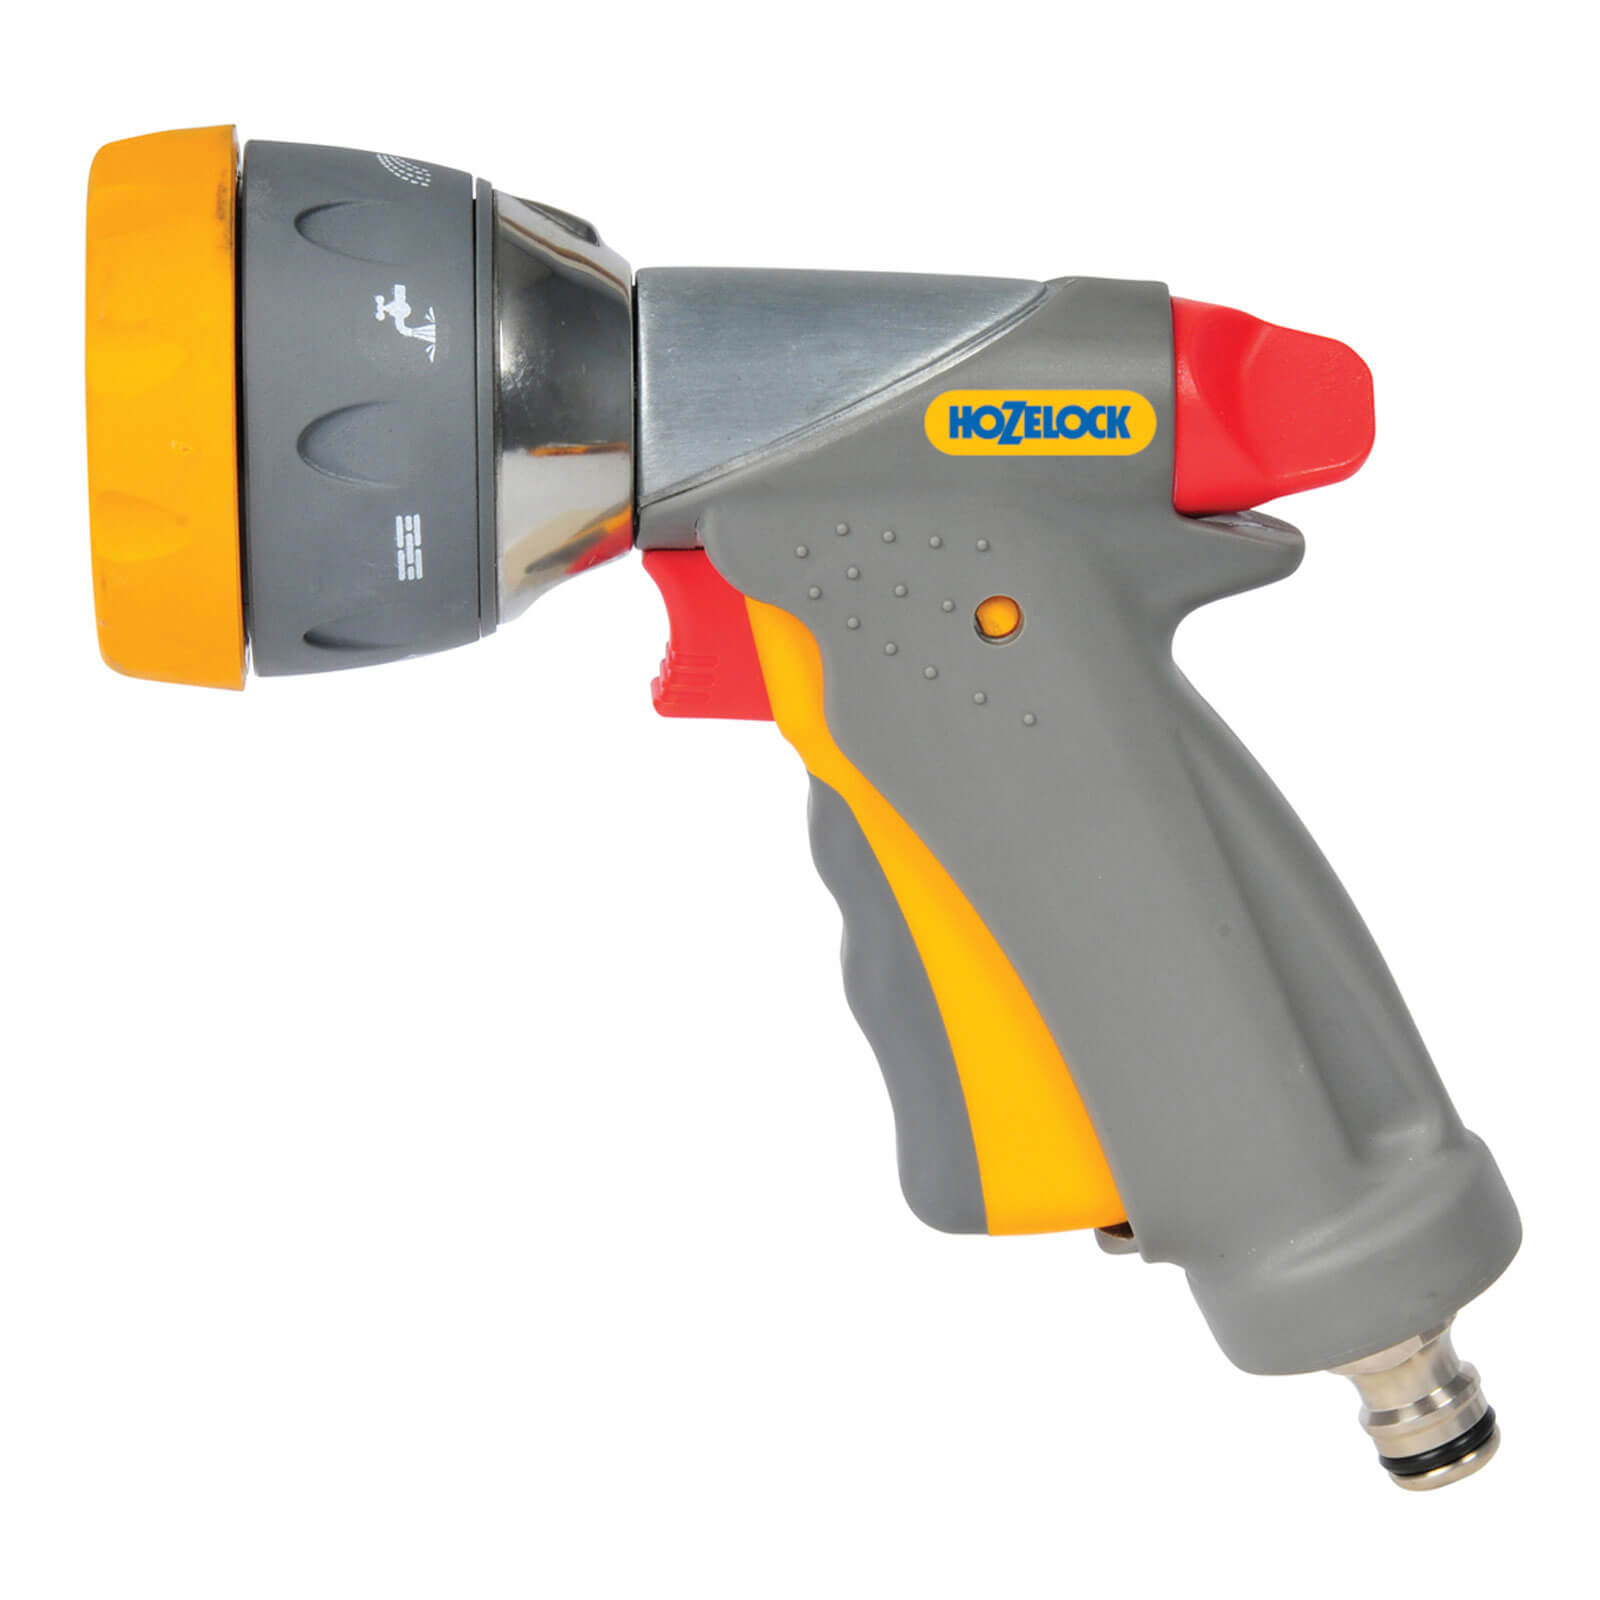 Hozelock Metal Multi Water Spray Gun Pro with 7 Spray Patterns for Hose Pipes